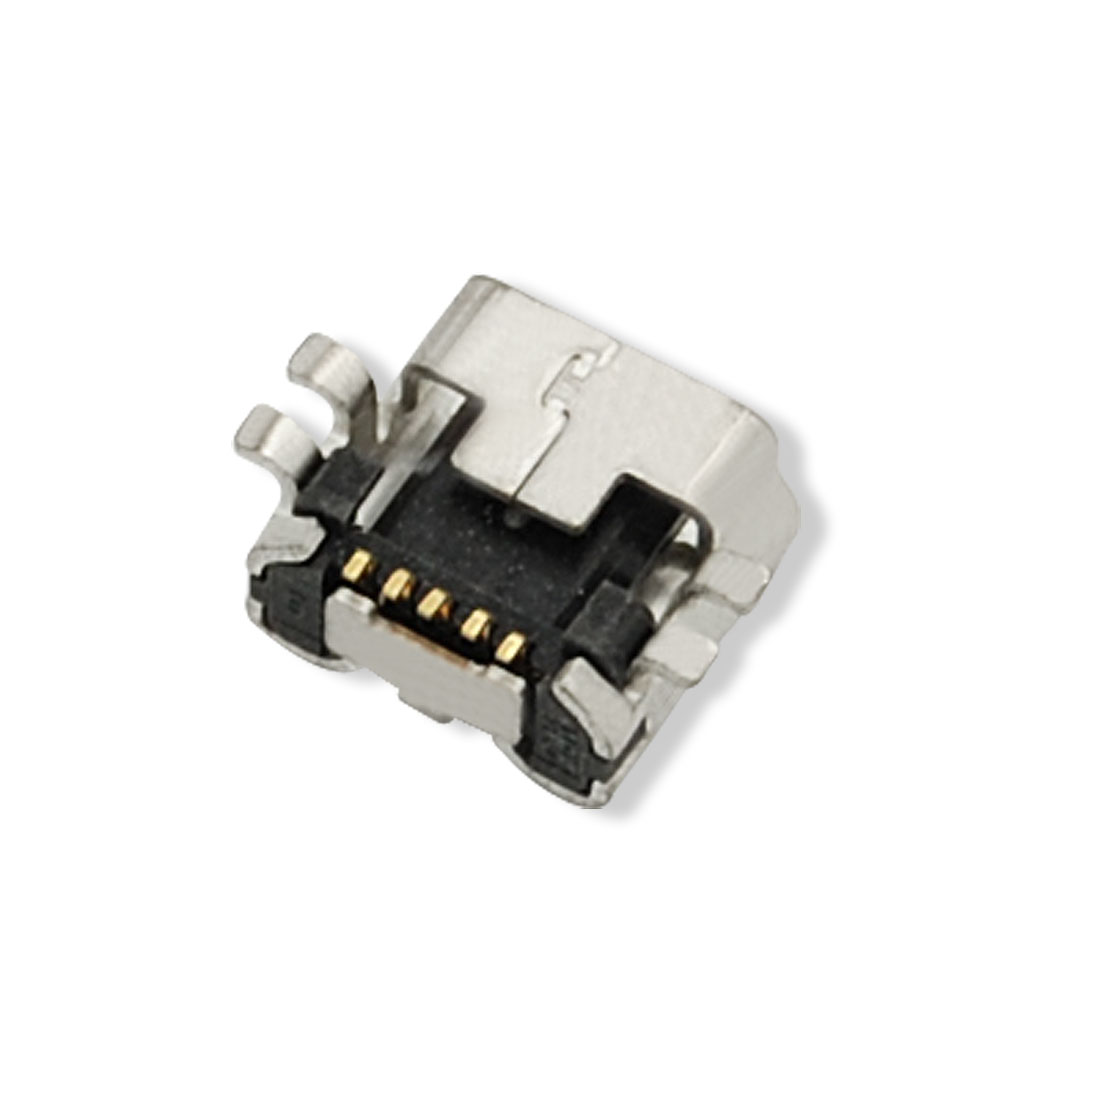 Replacement Data Connector End Repair Jack for Nokia N95